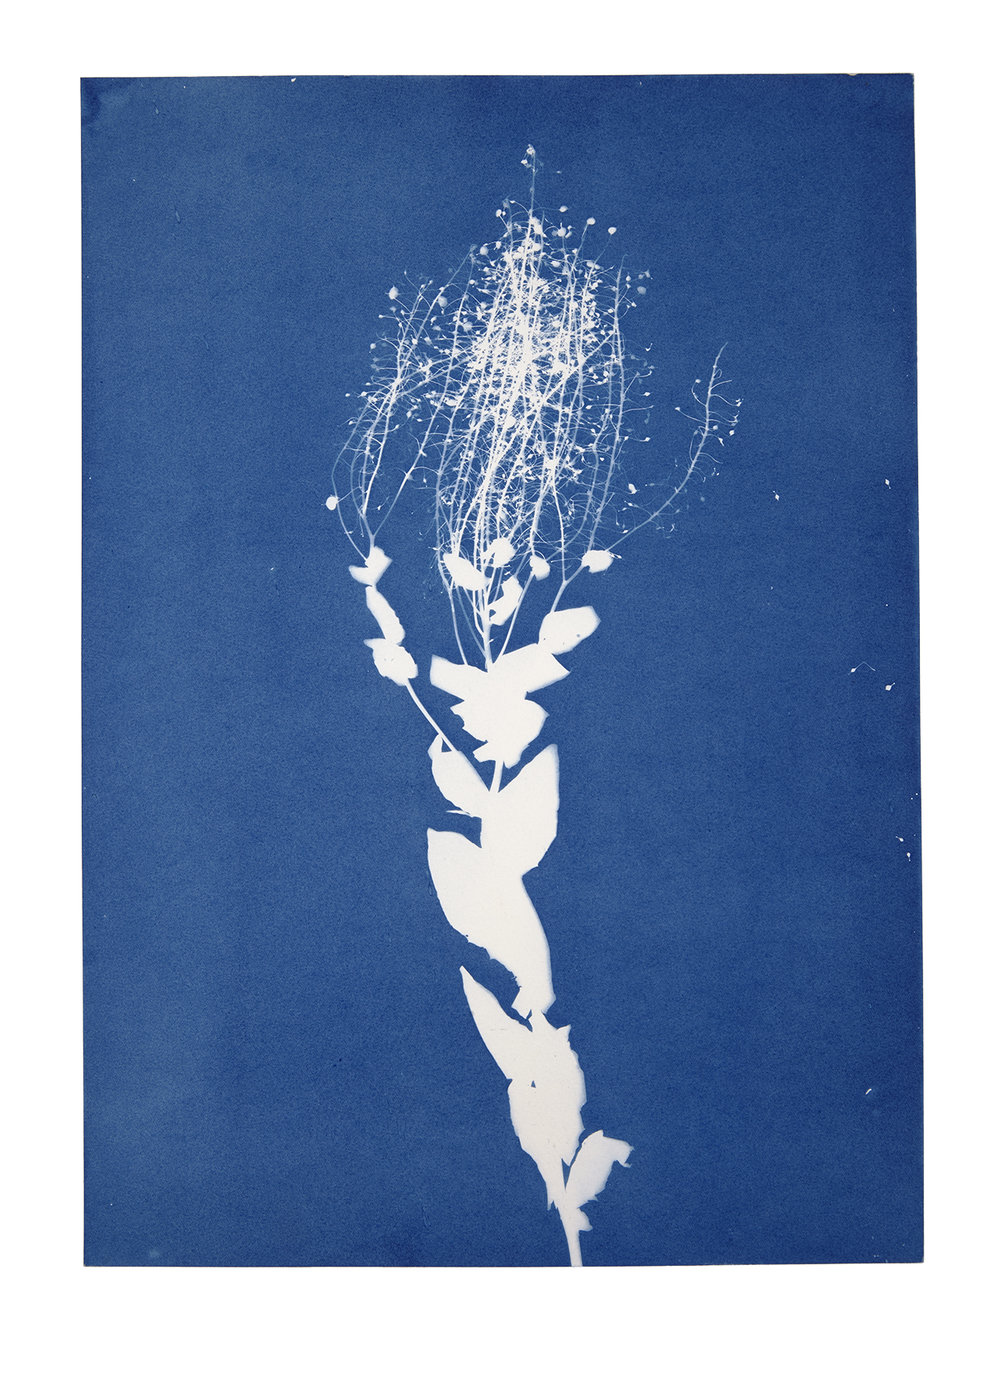 Jessie Brennan_Meadowsweet_cyanotype_Inside The Green Backyard (Opportunity Area).jpg